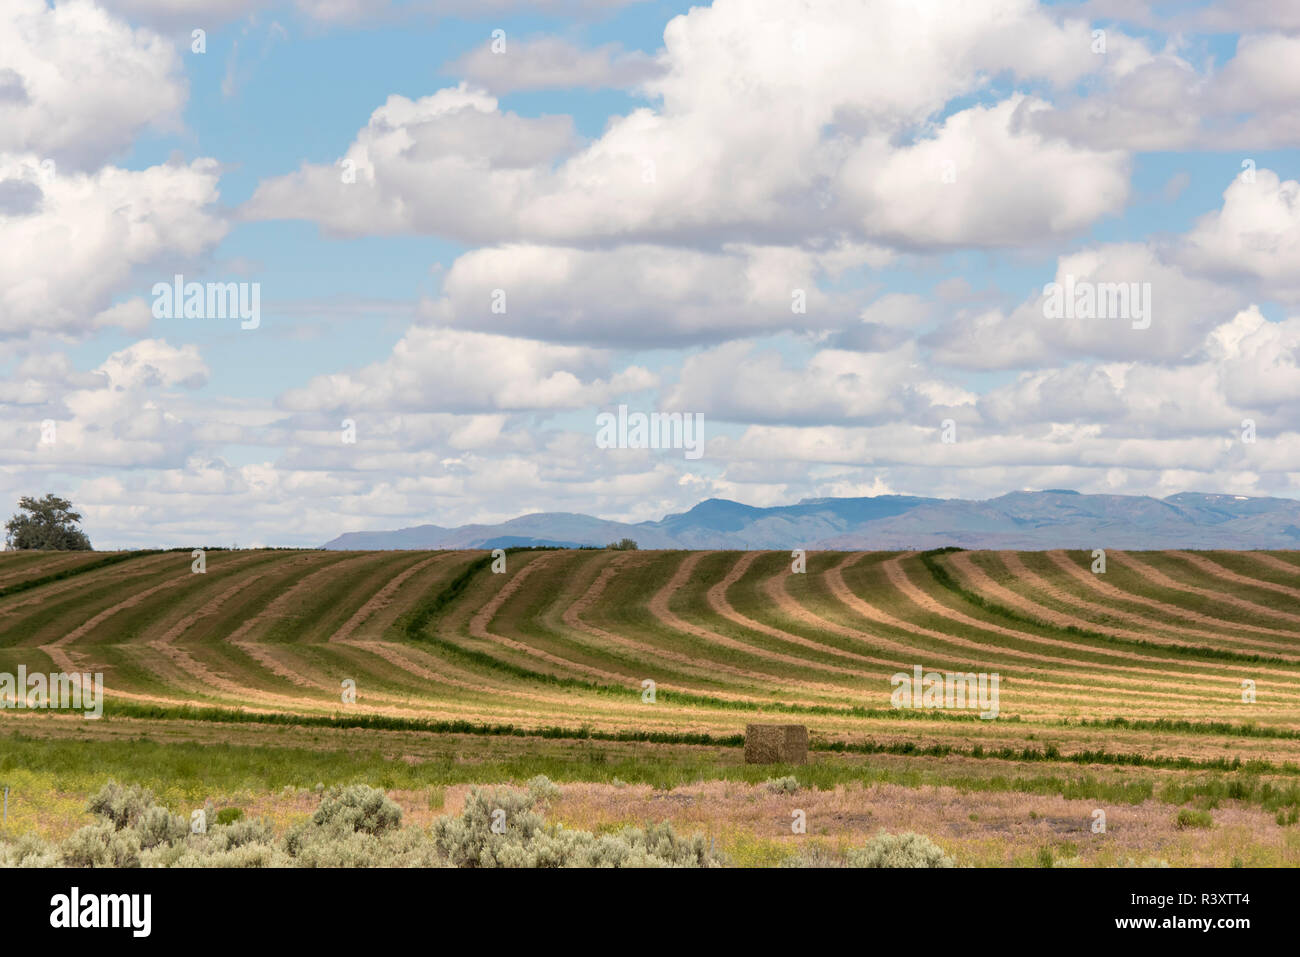 USA, Idaho. Agricultural patterns and dramatic sky - Stock Image